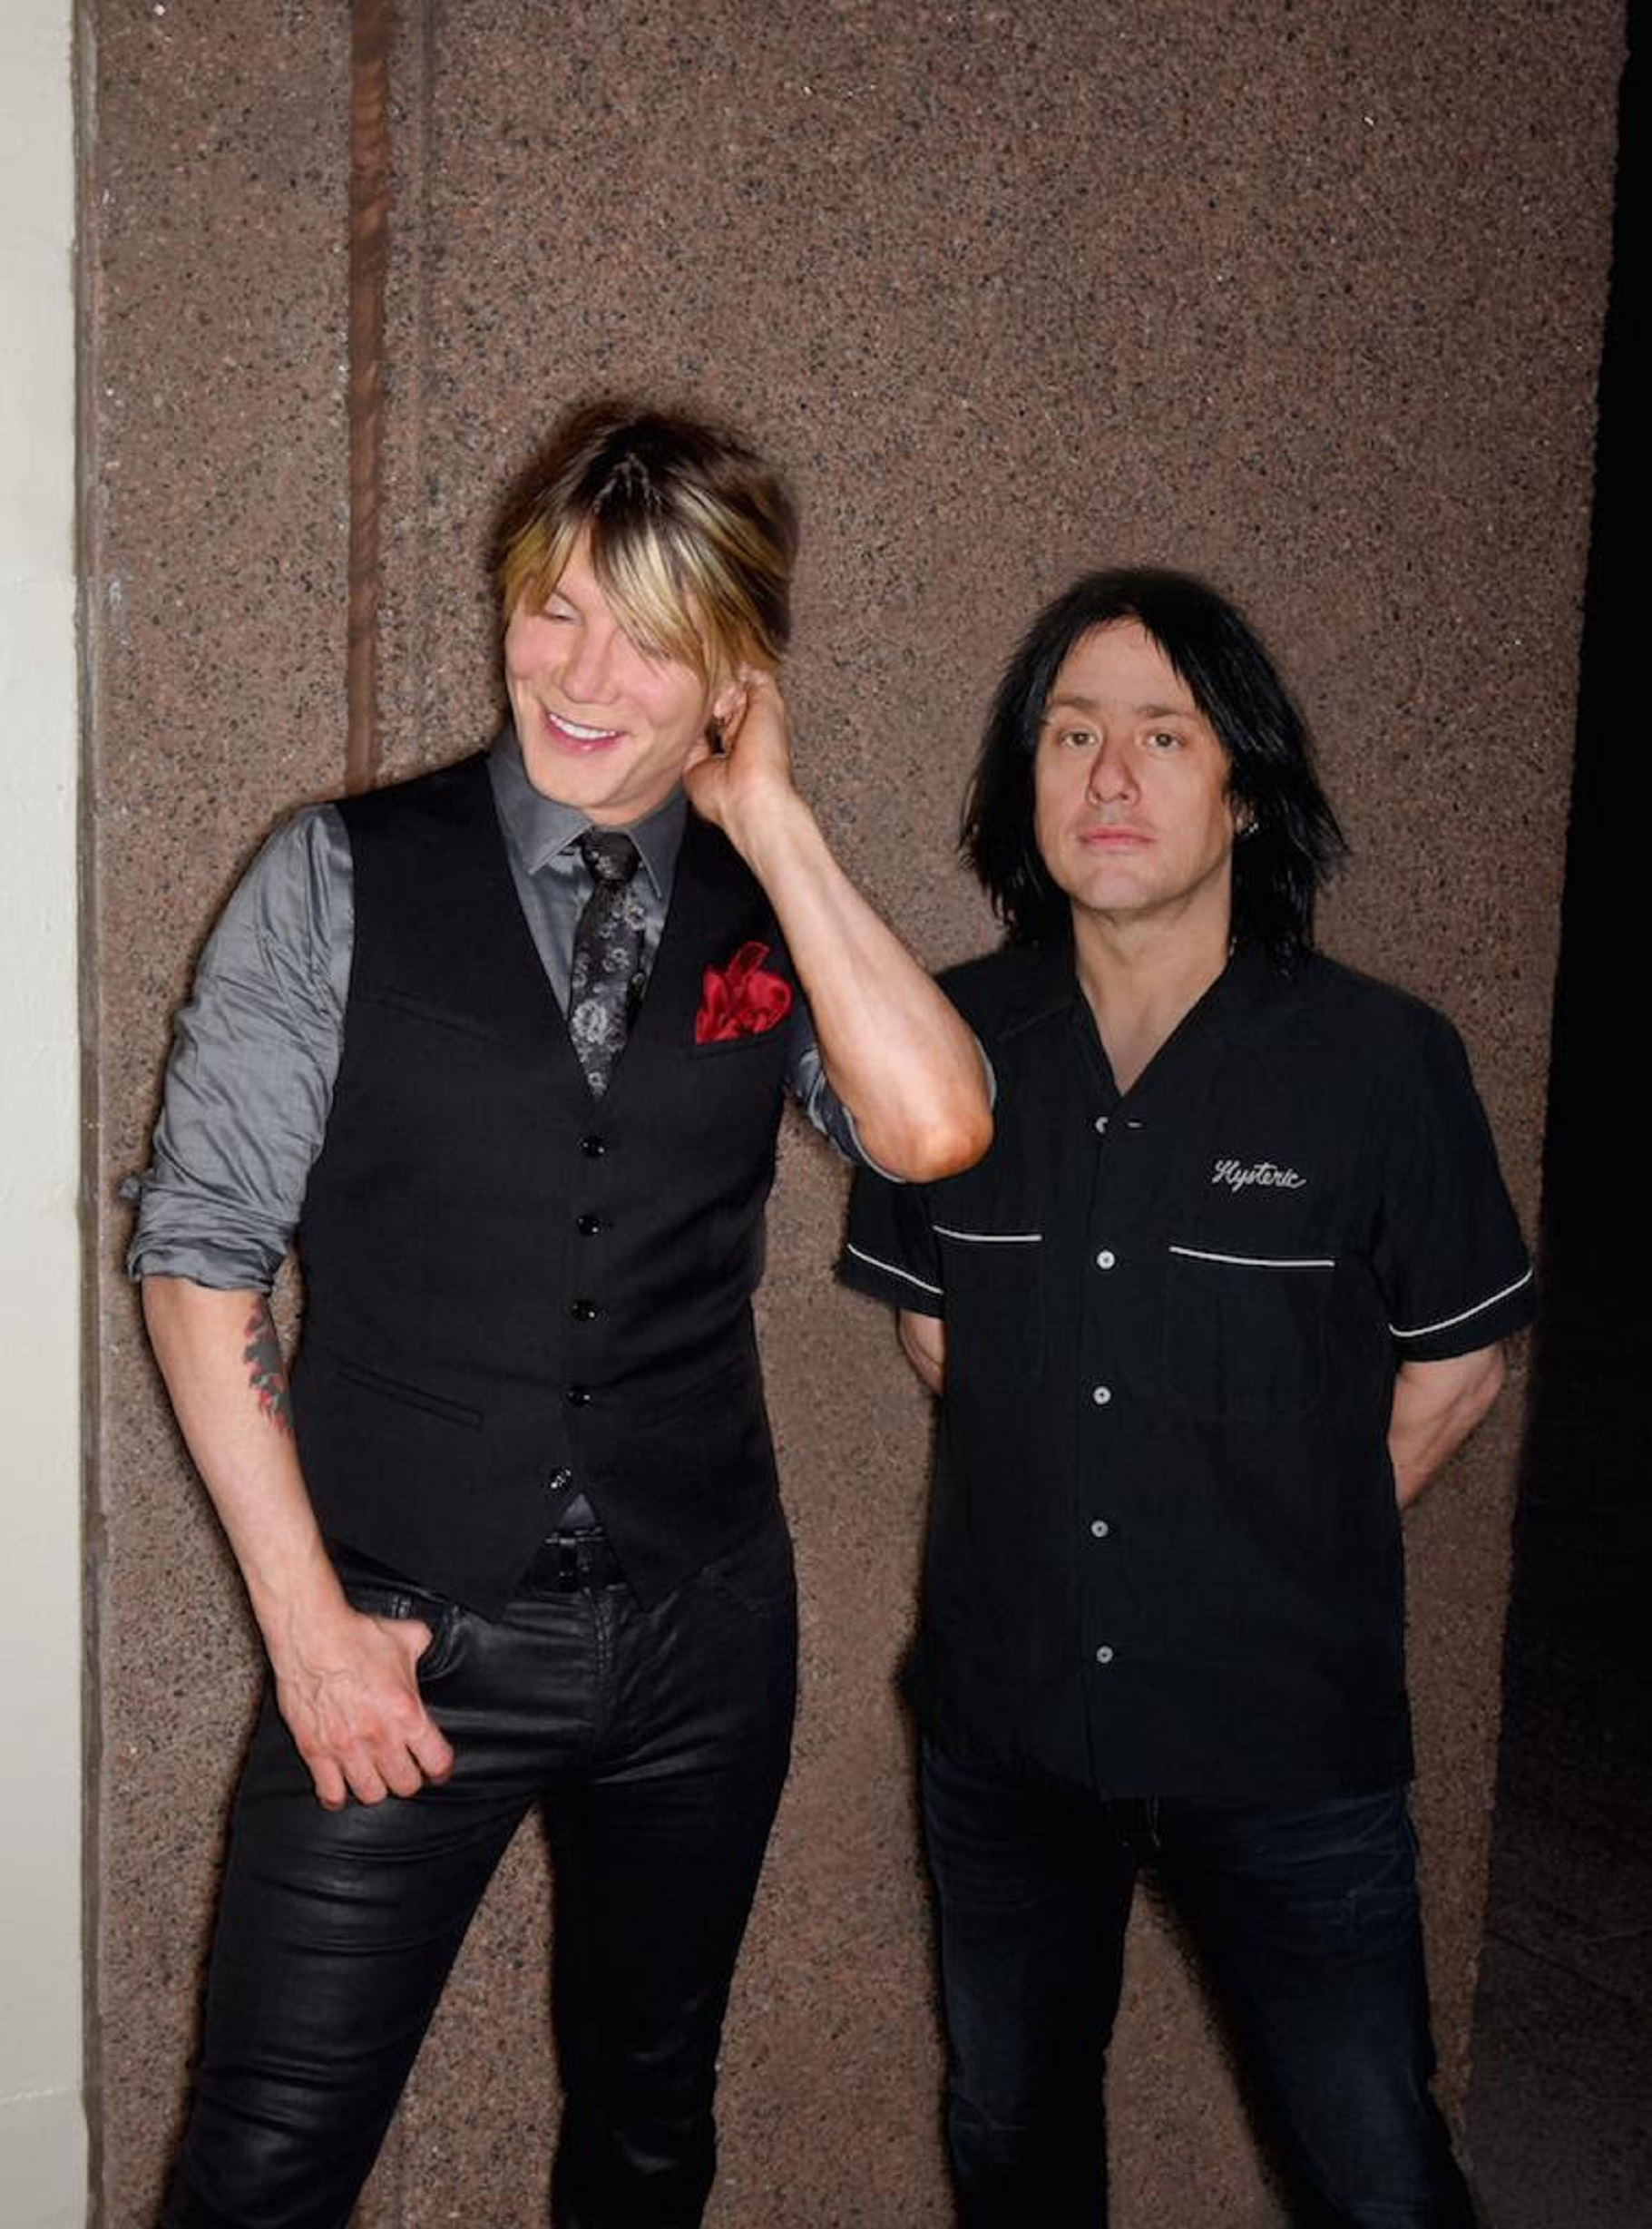 Goo Goo Dolls Announce 20th Anniversary Tour